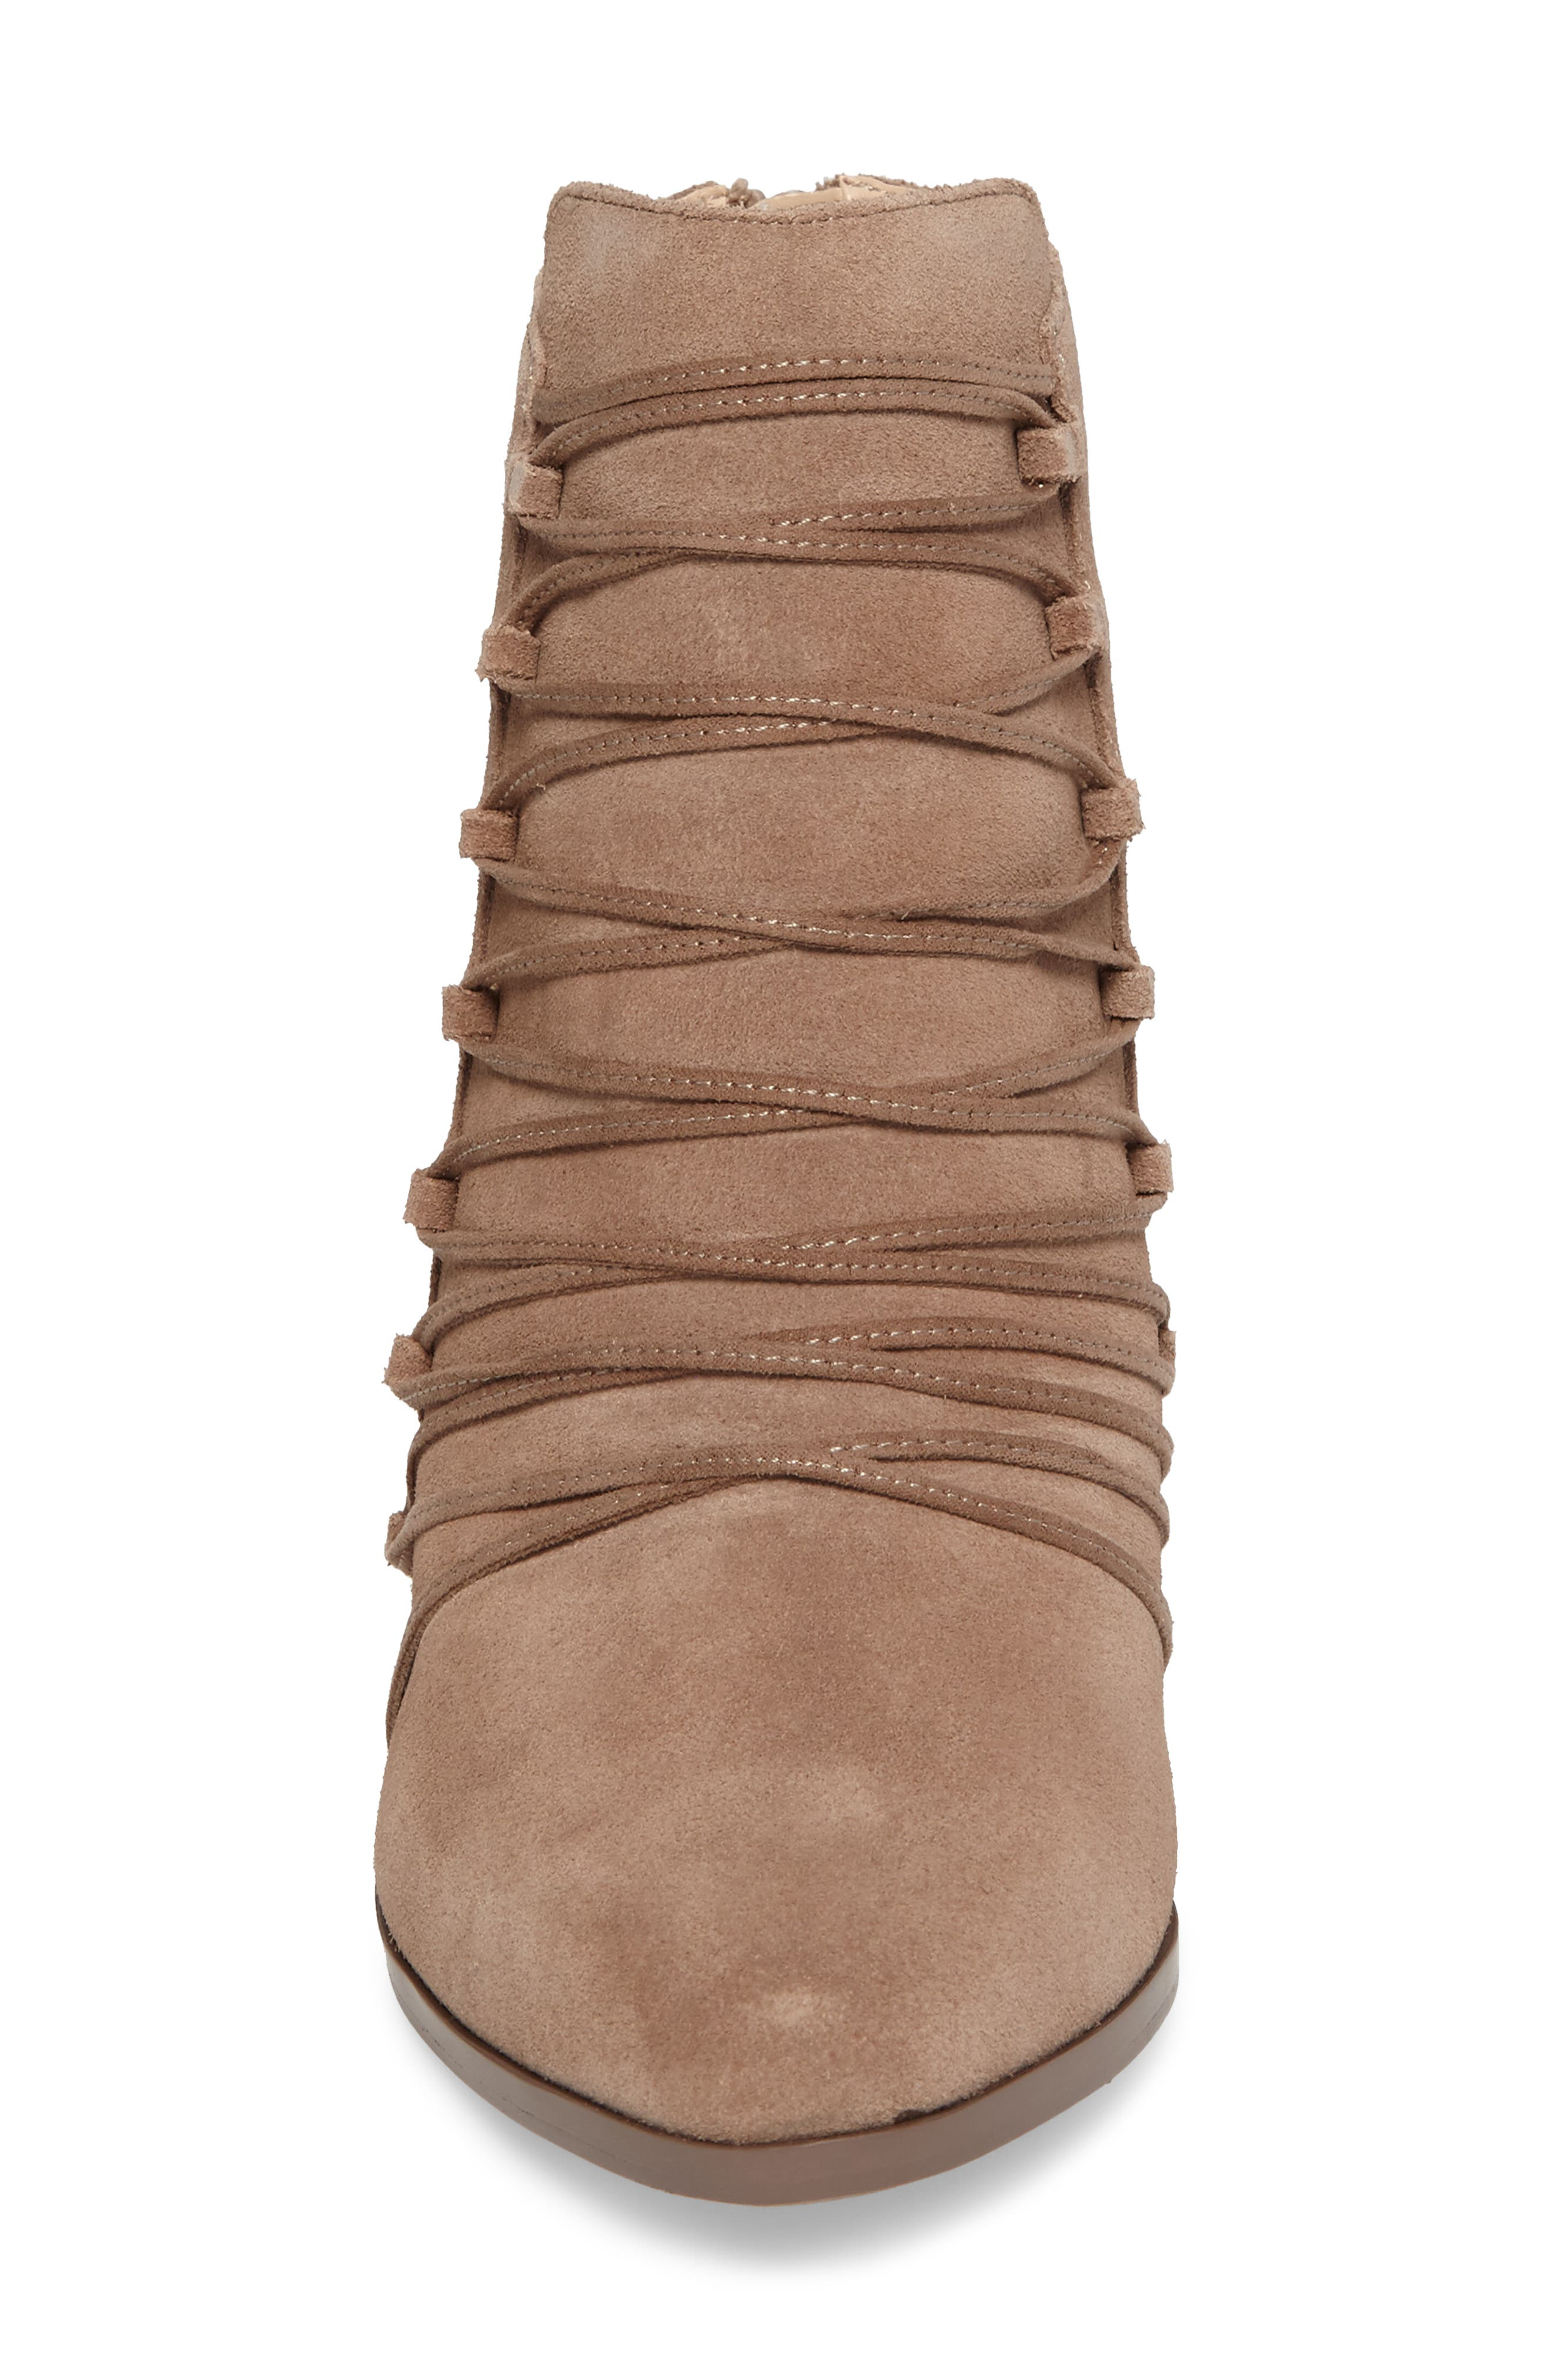 Bellevue Bootie,                             Alternate thumbnail 4, color,                             Night Taupe Suede